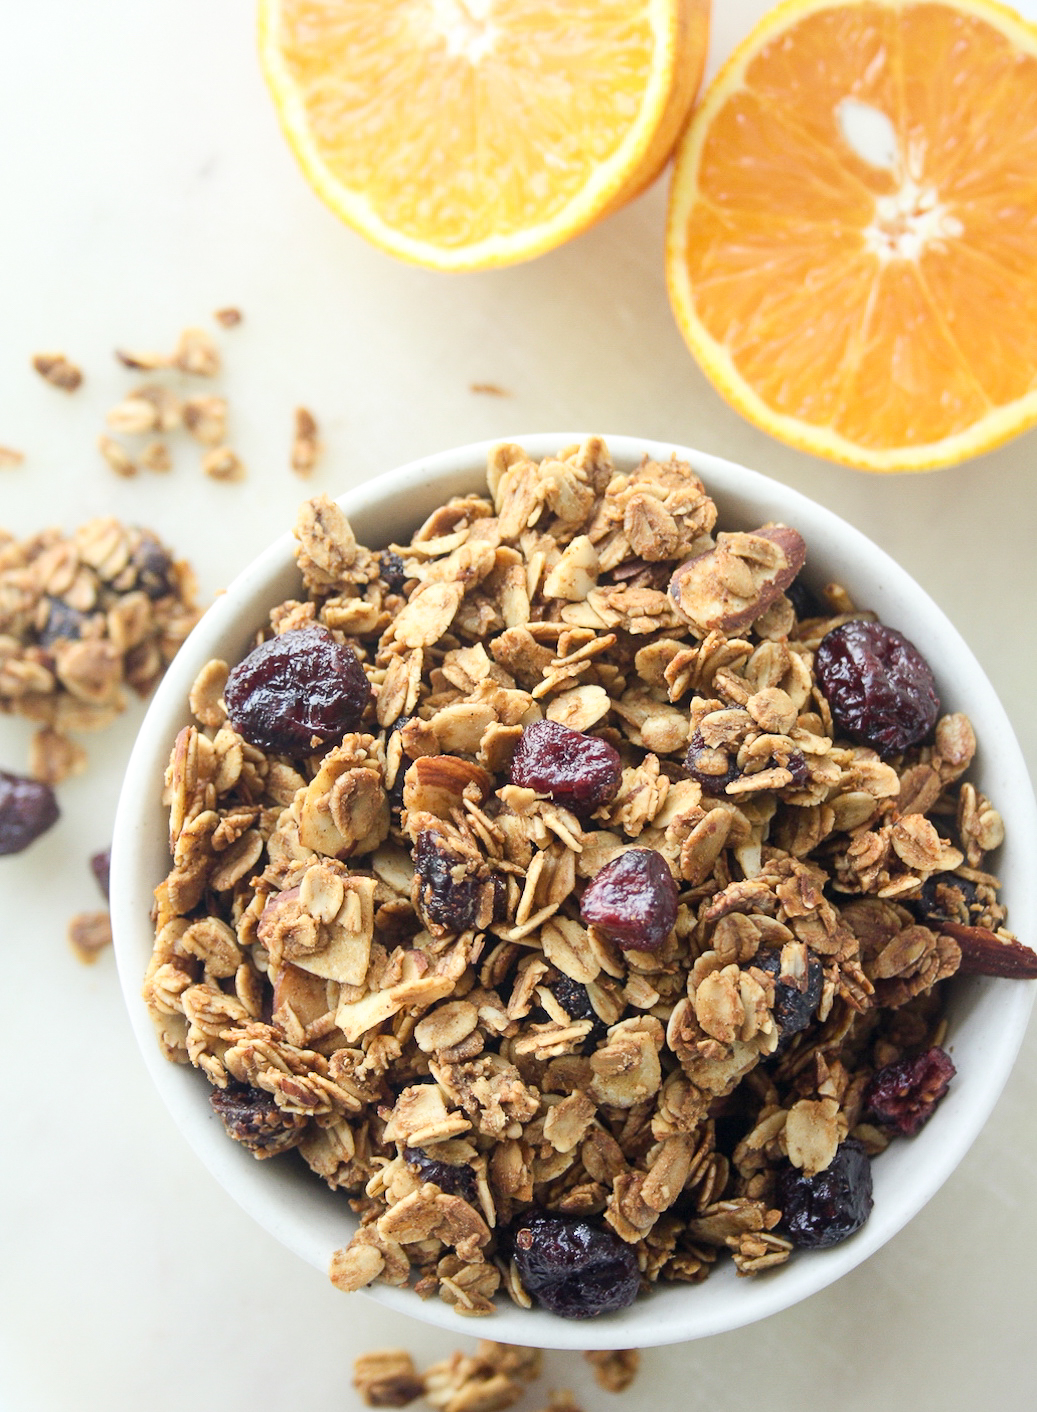 Crunchy spiced granola with cranberries and fresh orange